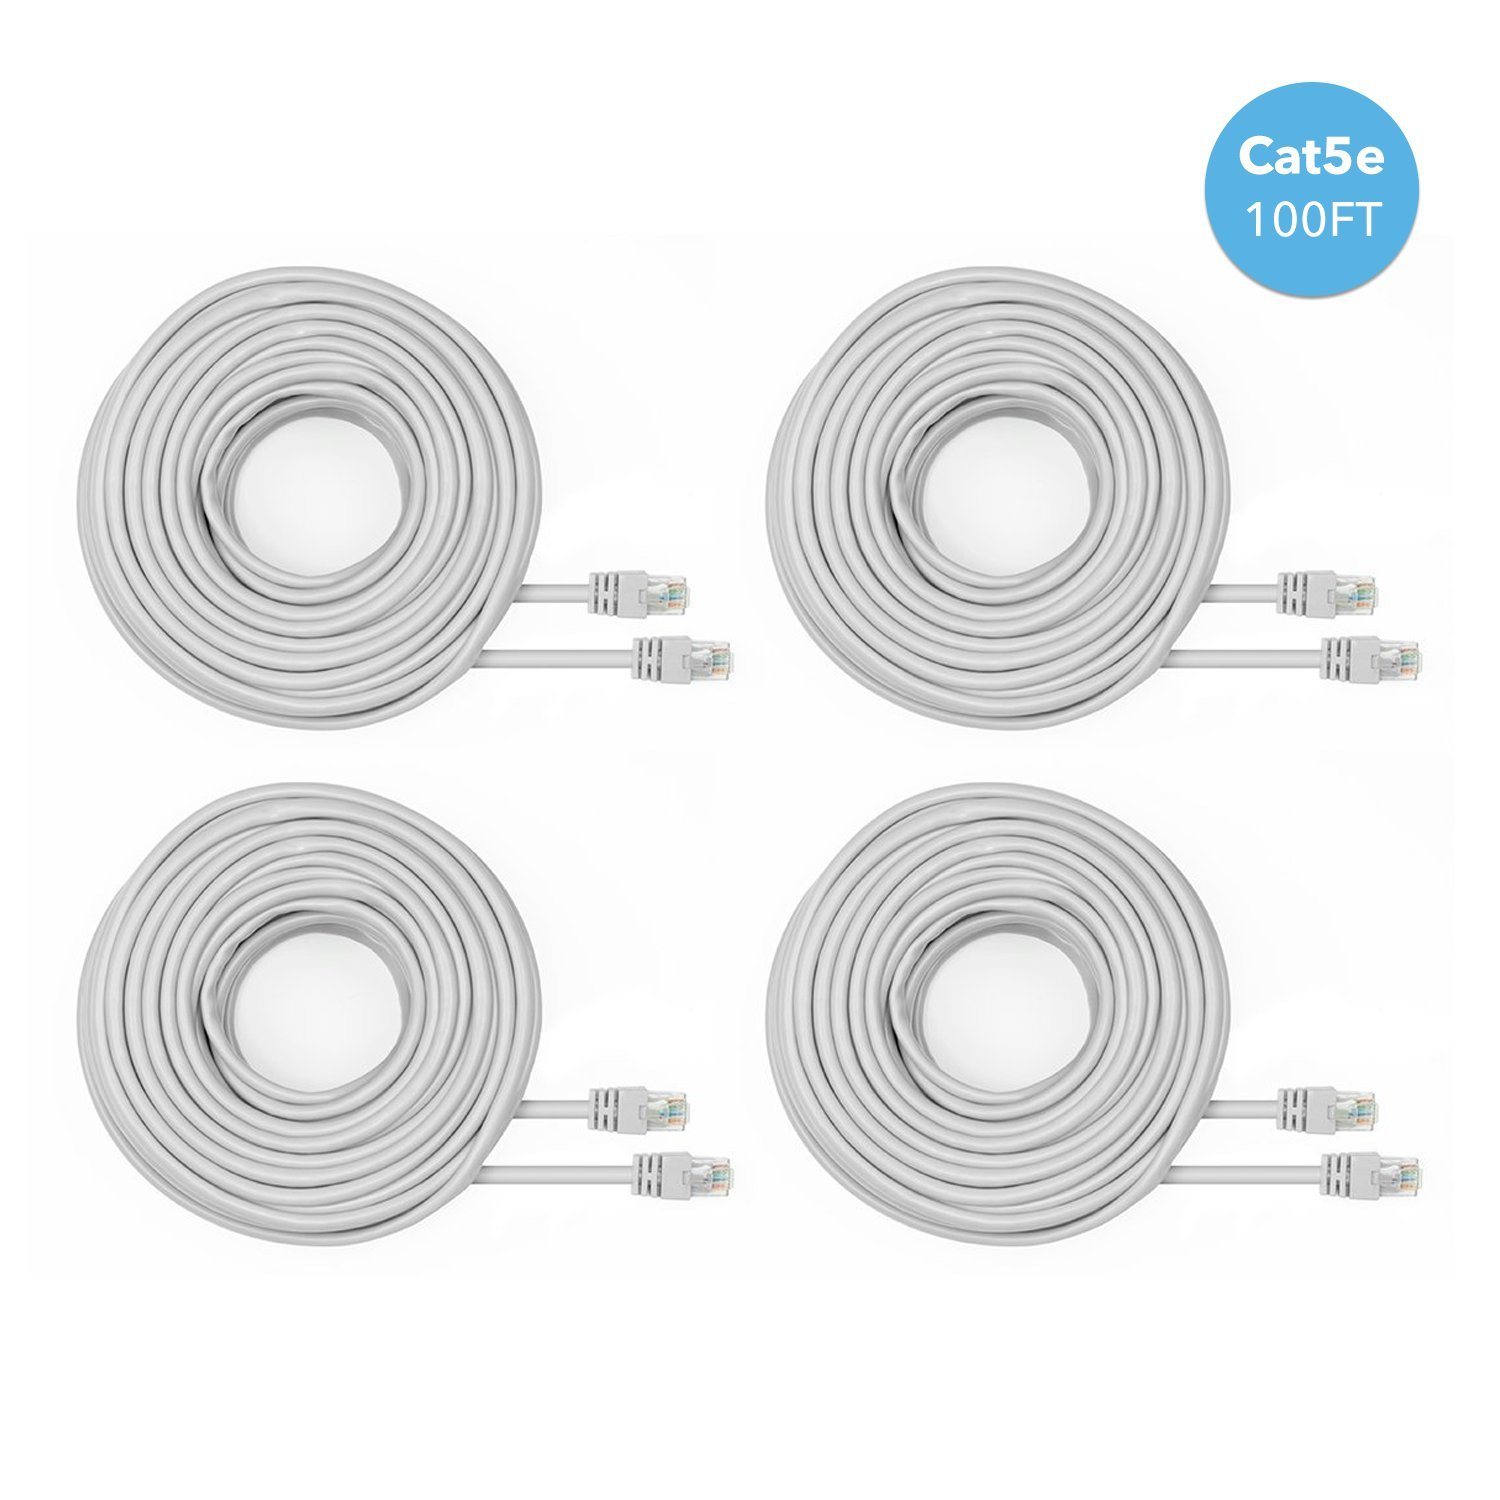 Amcrest Cat5e Cable 100ft Ethernet Cable Internet High Speed Network Cable for POE Security Cameras, Smart TV, PS4, Xbox, Nintendo Switch, Router, Laptop, Computer, Home, 4-PACK (4PACK-CAT5ECABLE100)